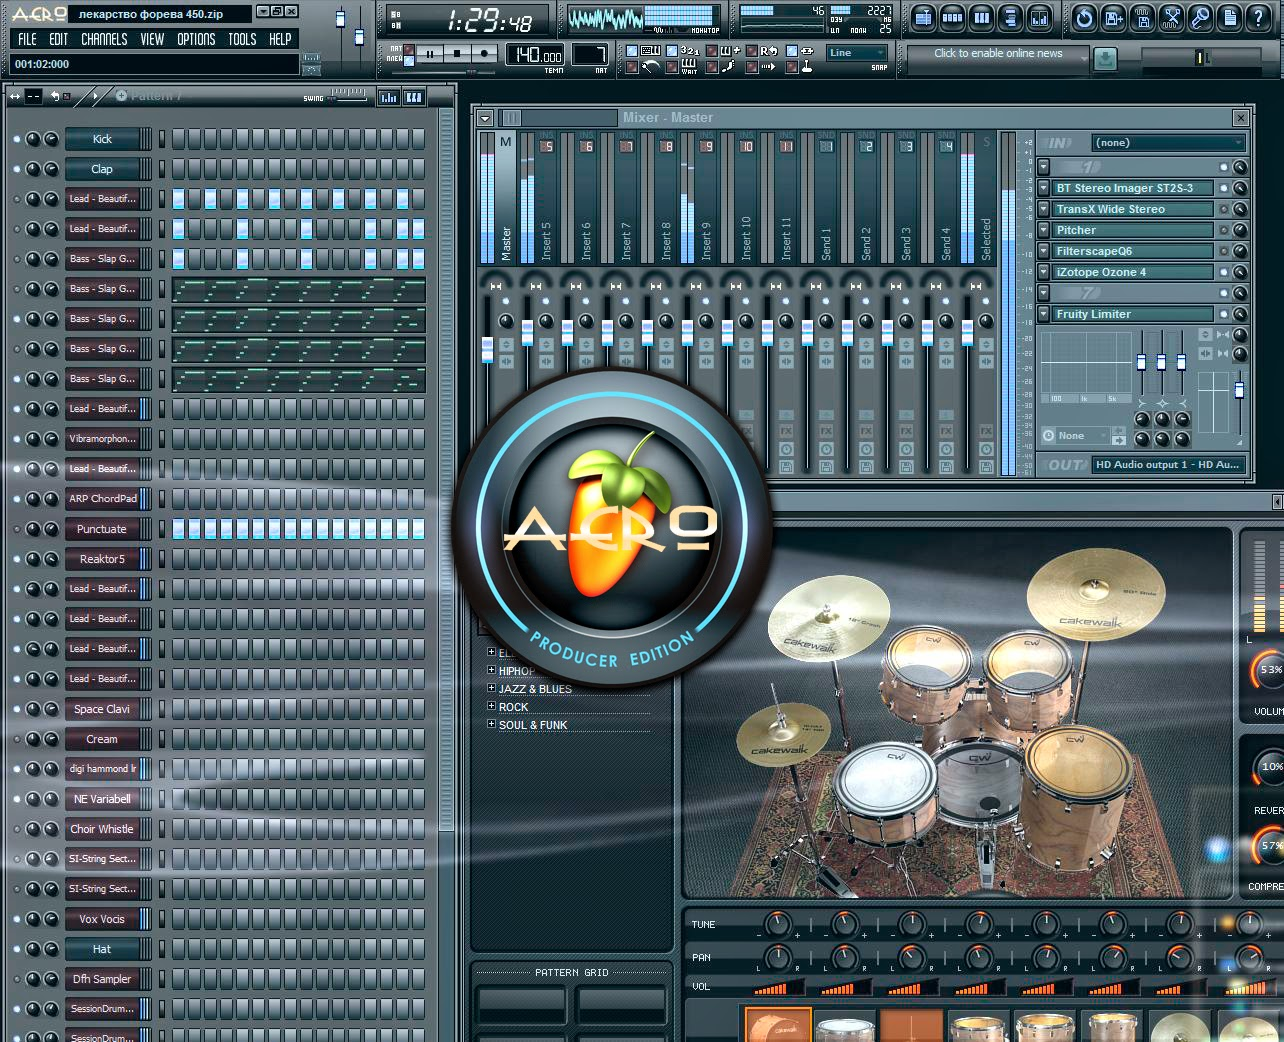 Fl studio 20.0.5.681 registration key Features